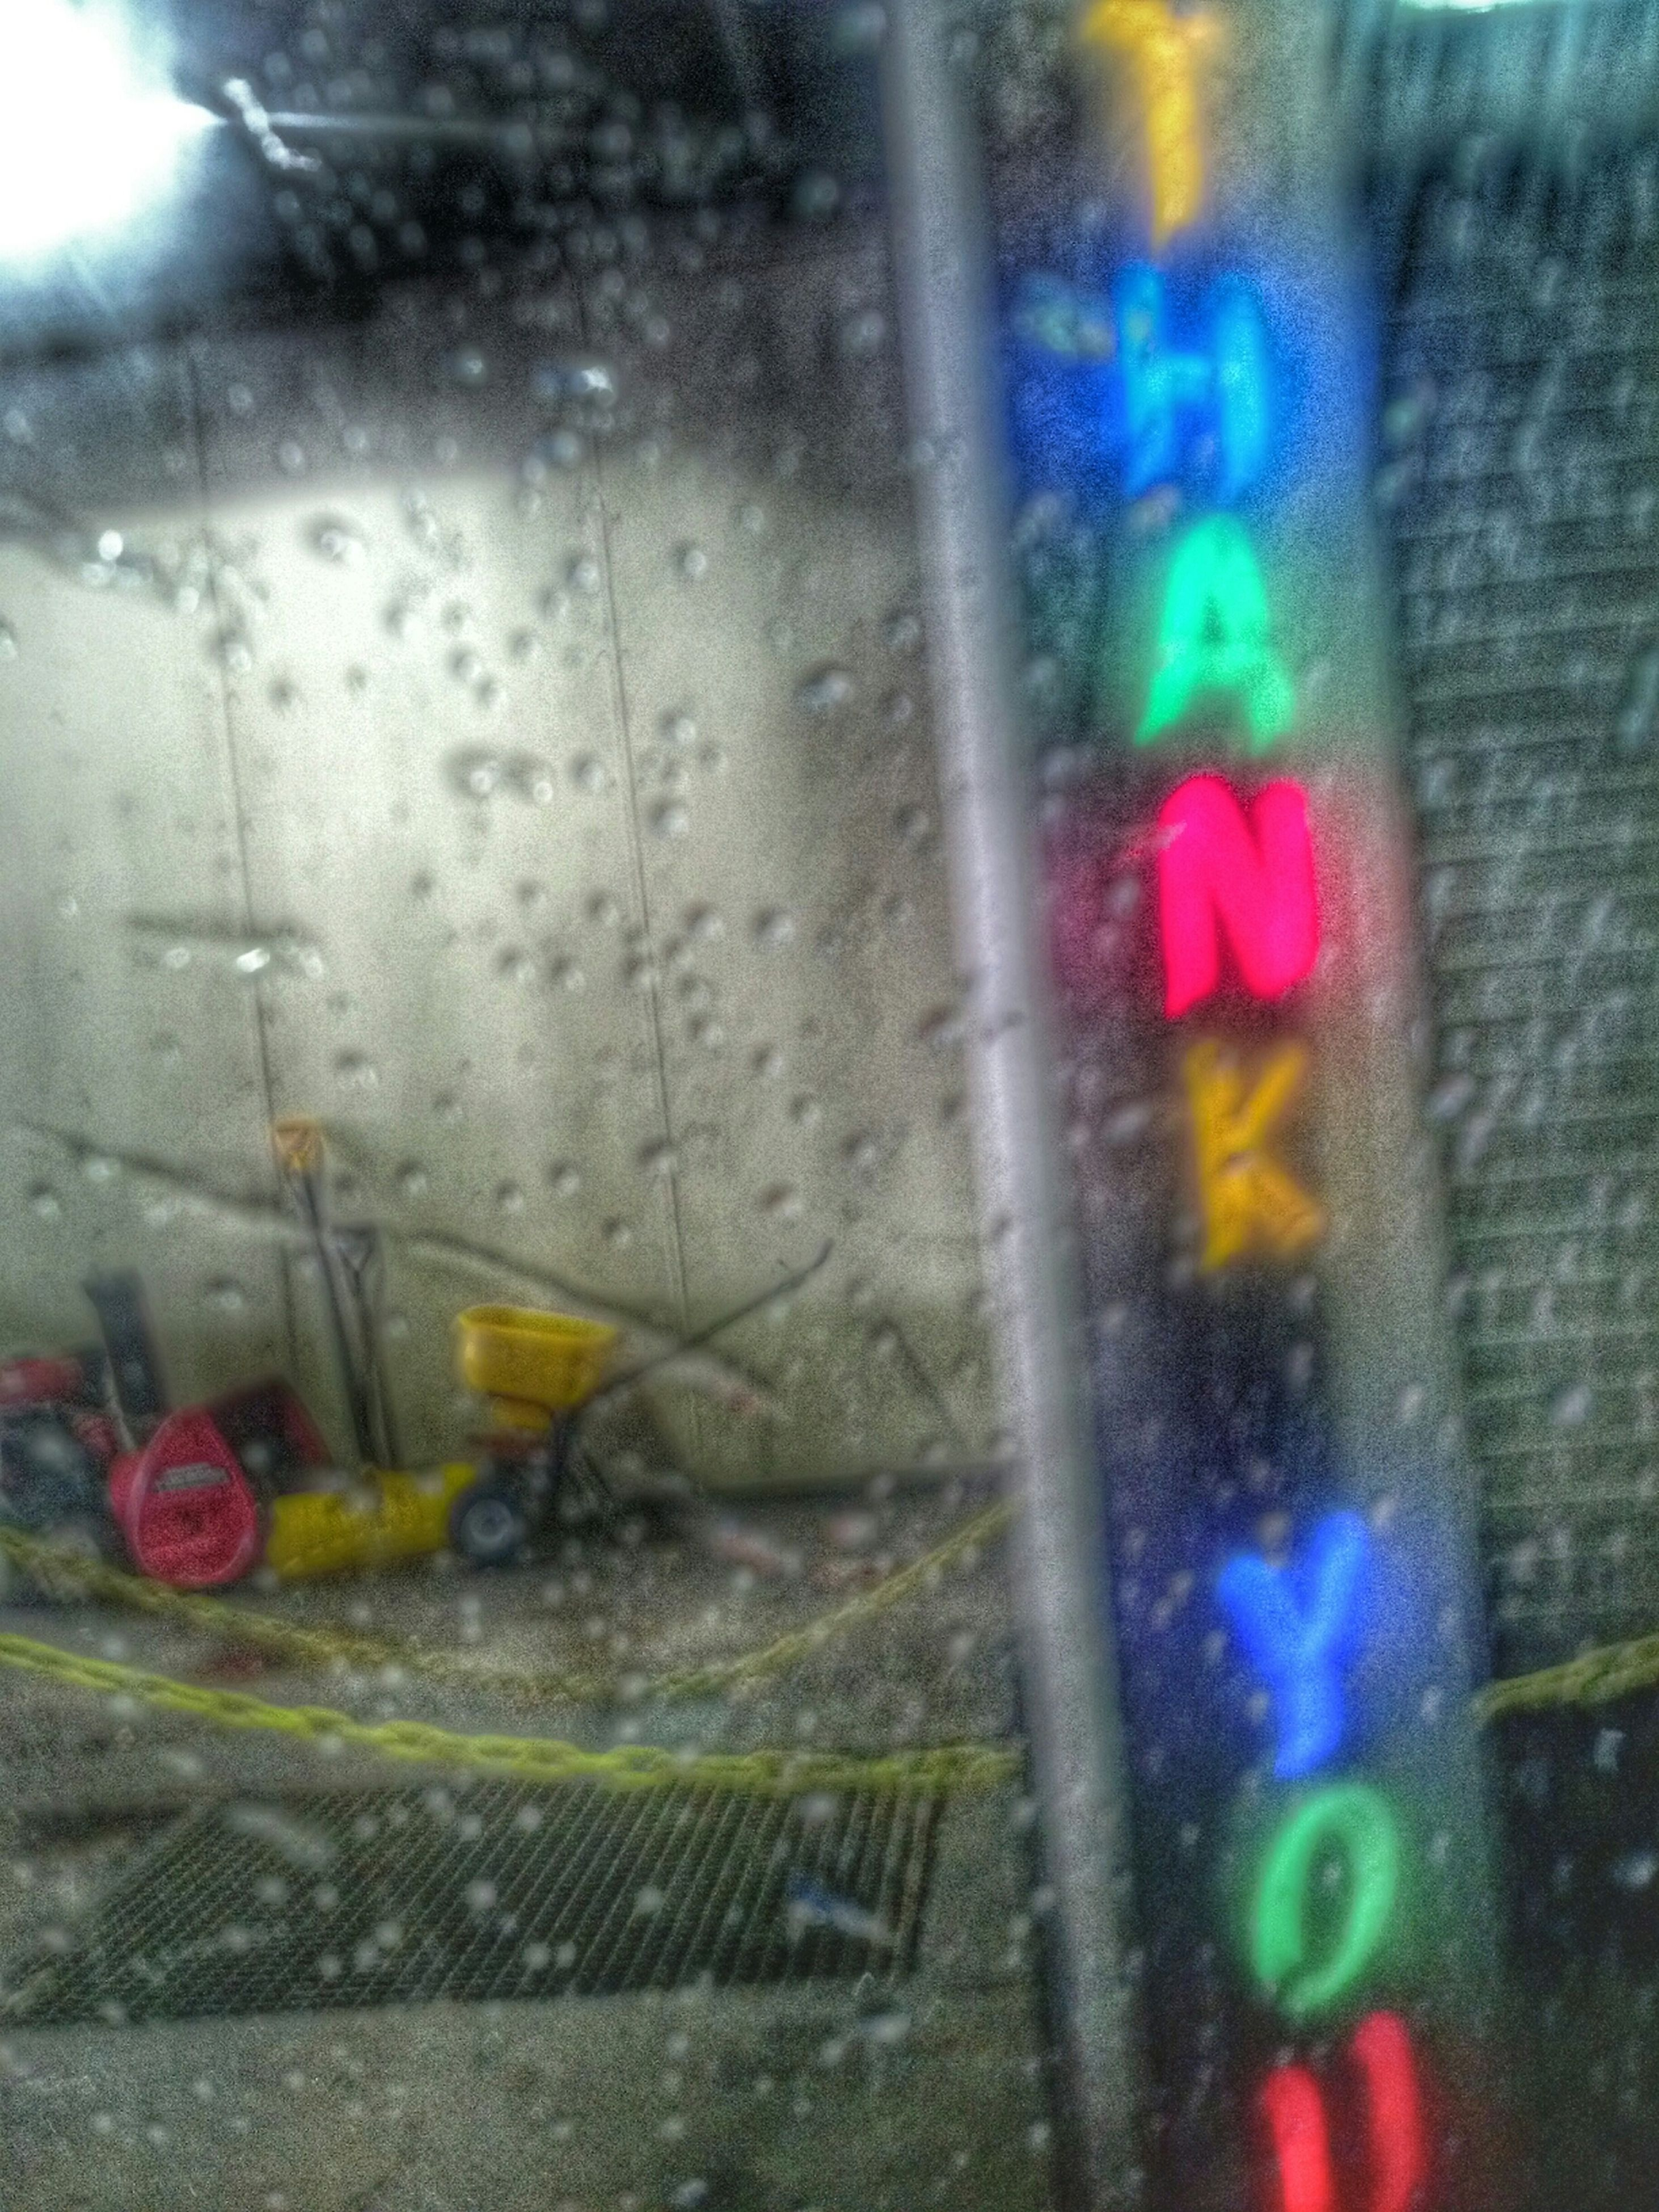 glass - material, window, transparent, flower, wet, transportation, red, indoors, car, fragility, rain, drop, multi colored, land vehicle, close-up, focus on foreground, weather, street, mode of transport, no people